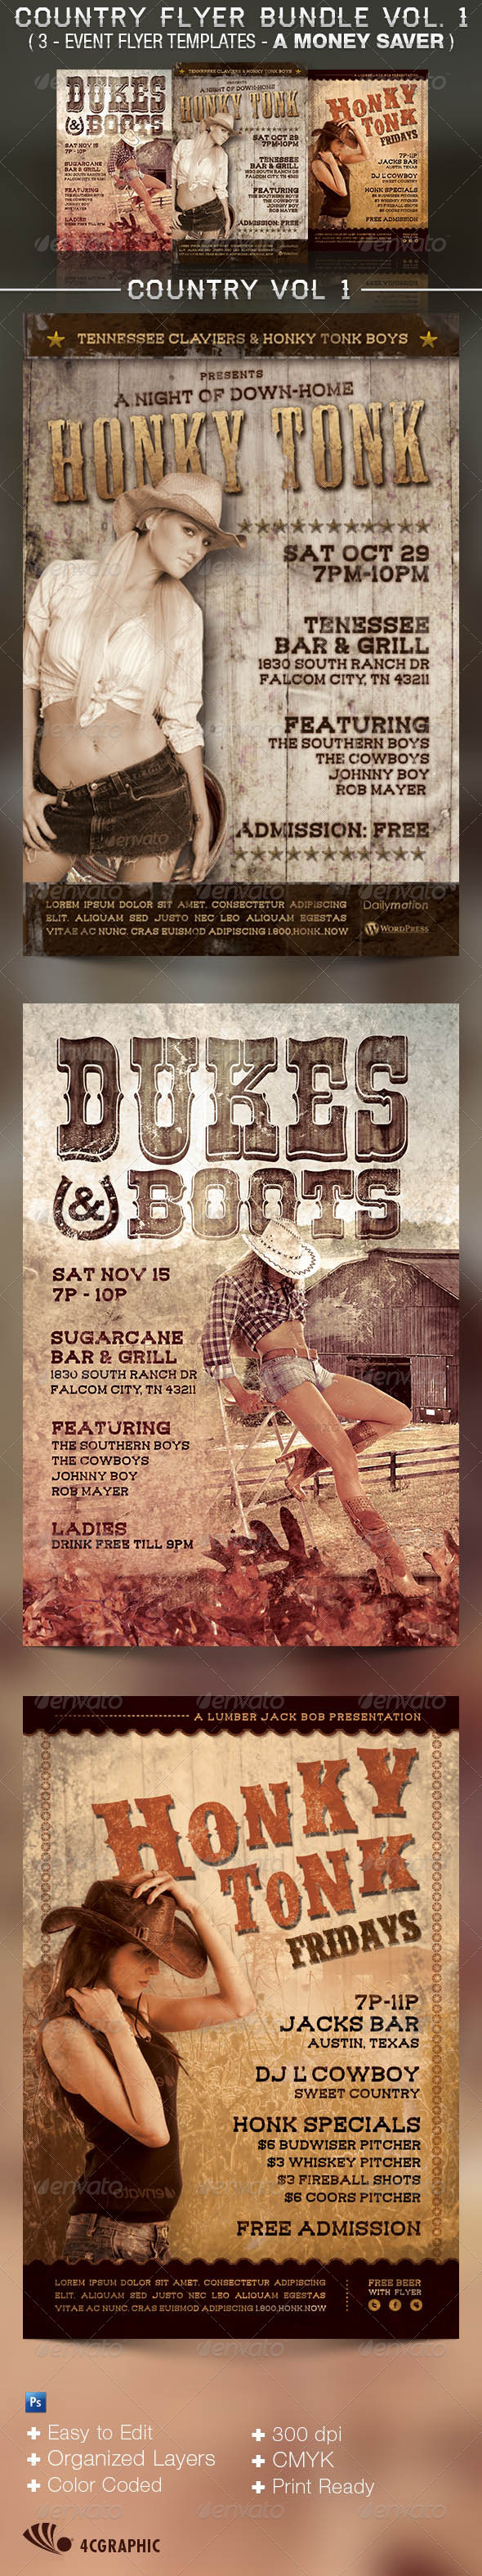 Honky Tonk Flyer Templates Bundle Vol. 1 - Clubs & Parties Events